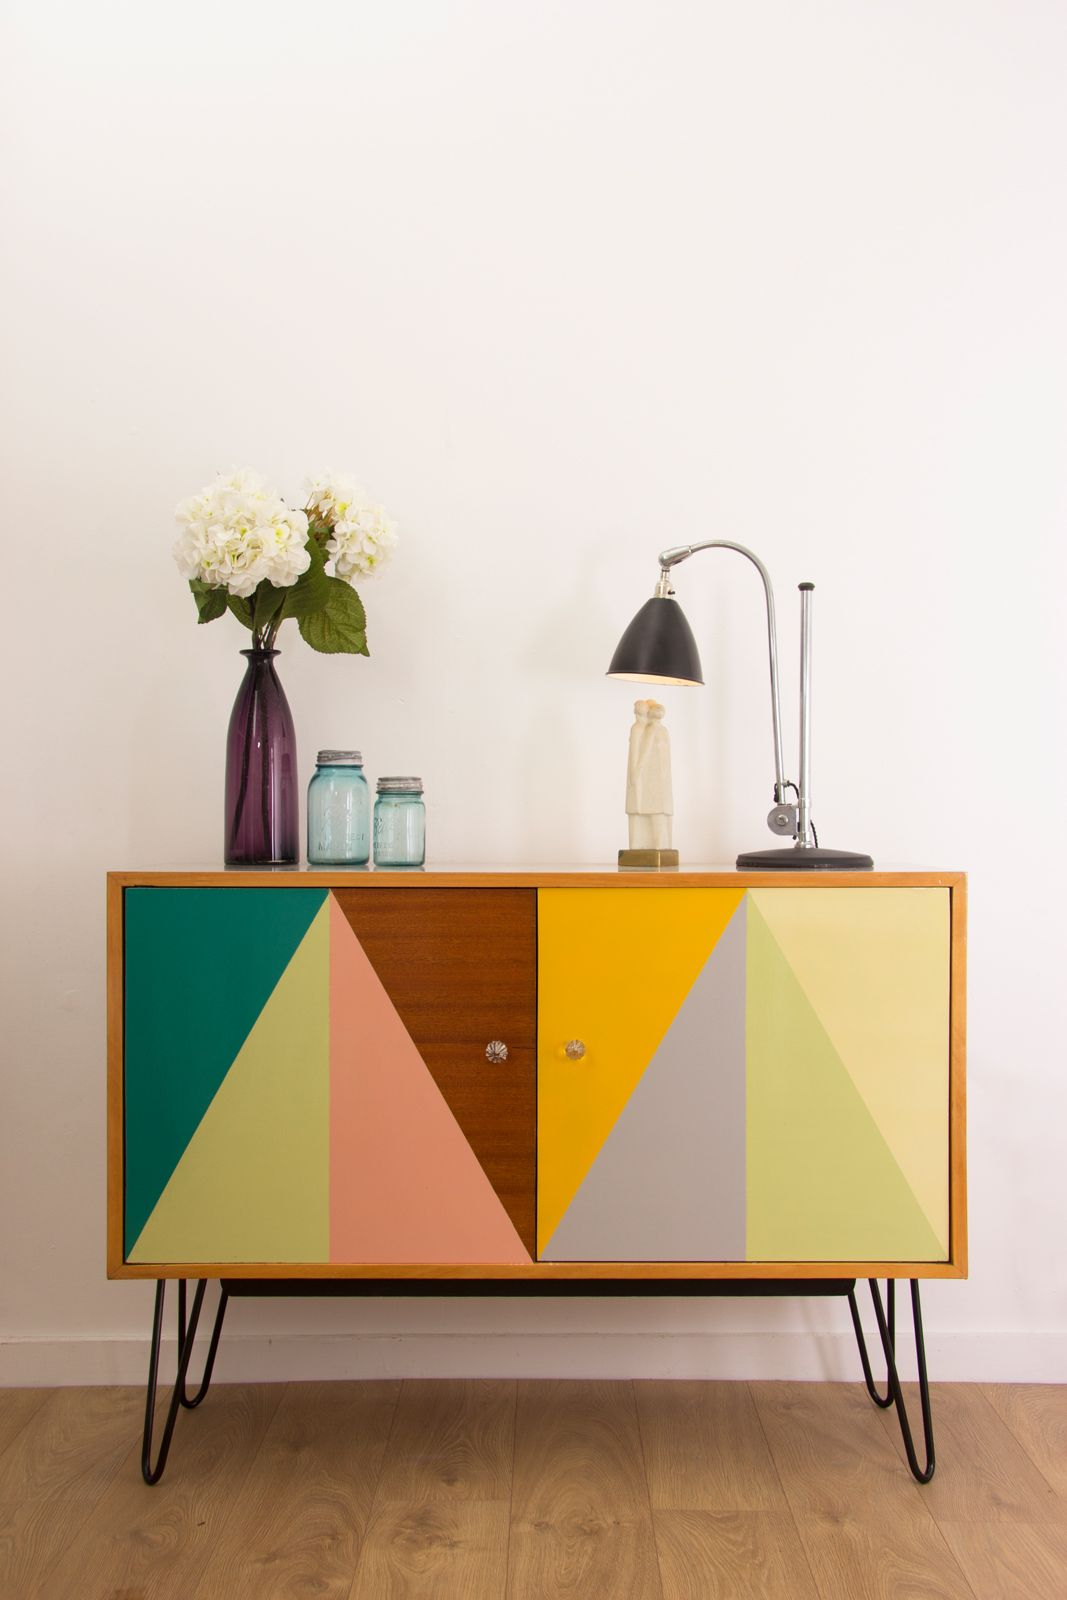 Upcycling furniture to sell